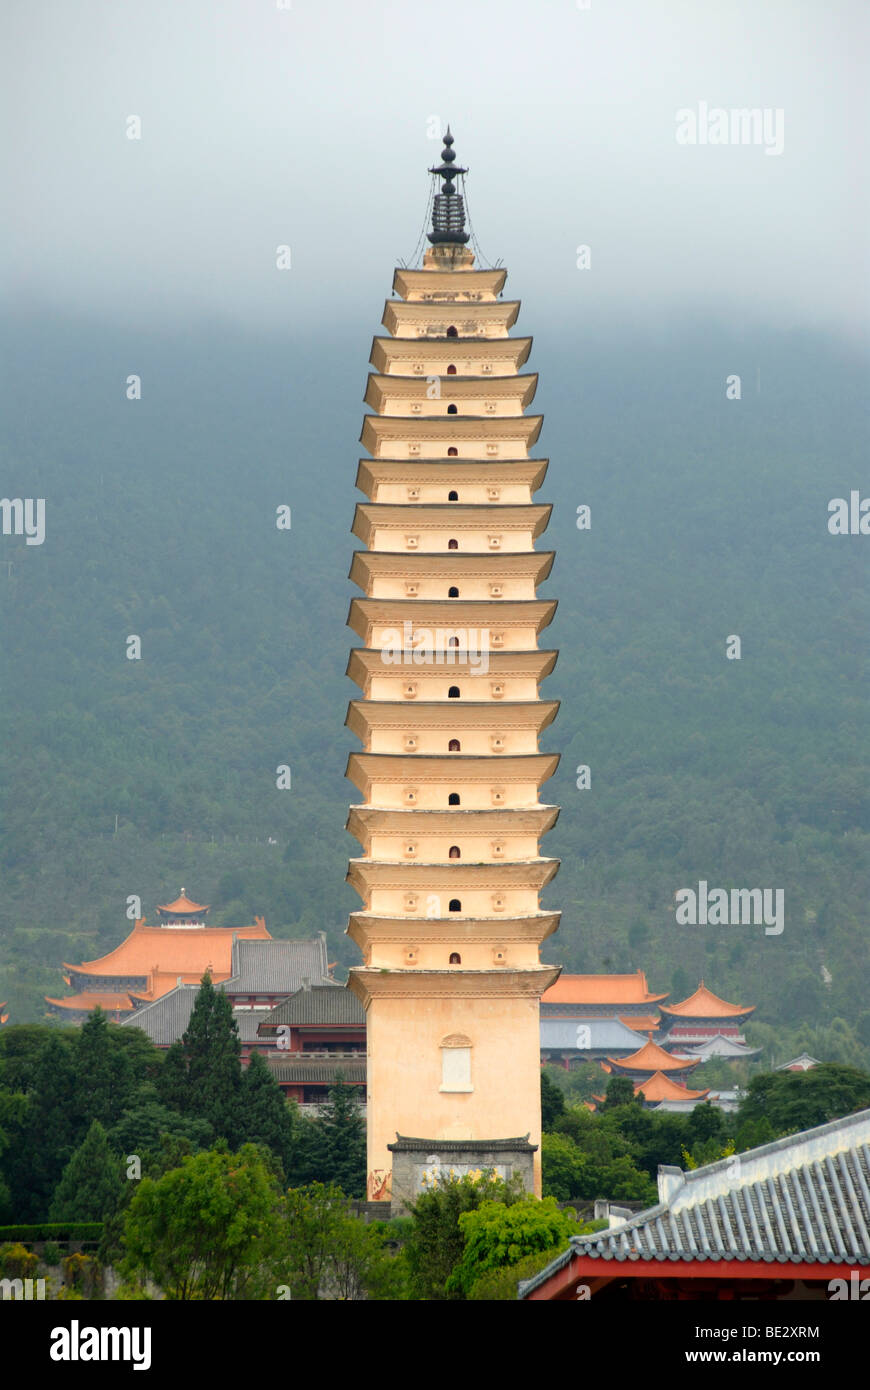 Ancient Buddhist tower, Three Pagodas, Dali, Yunnan Province, People's Republic of China, Asia - Stock Image